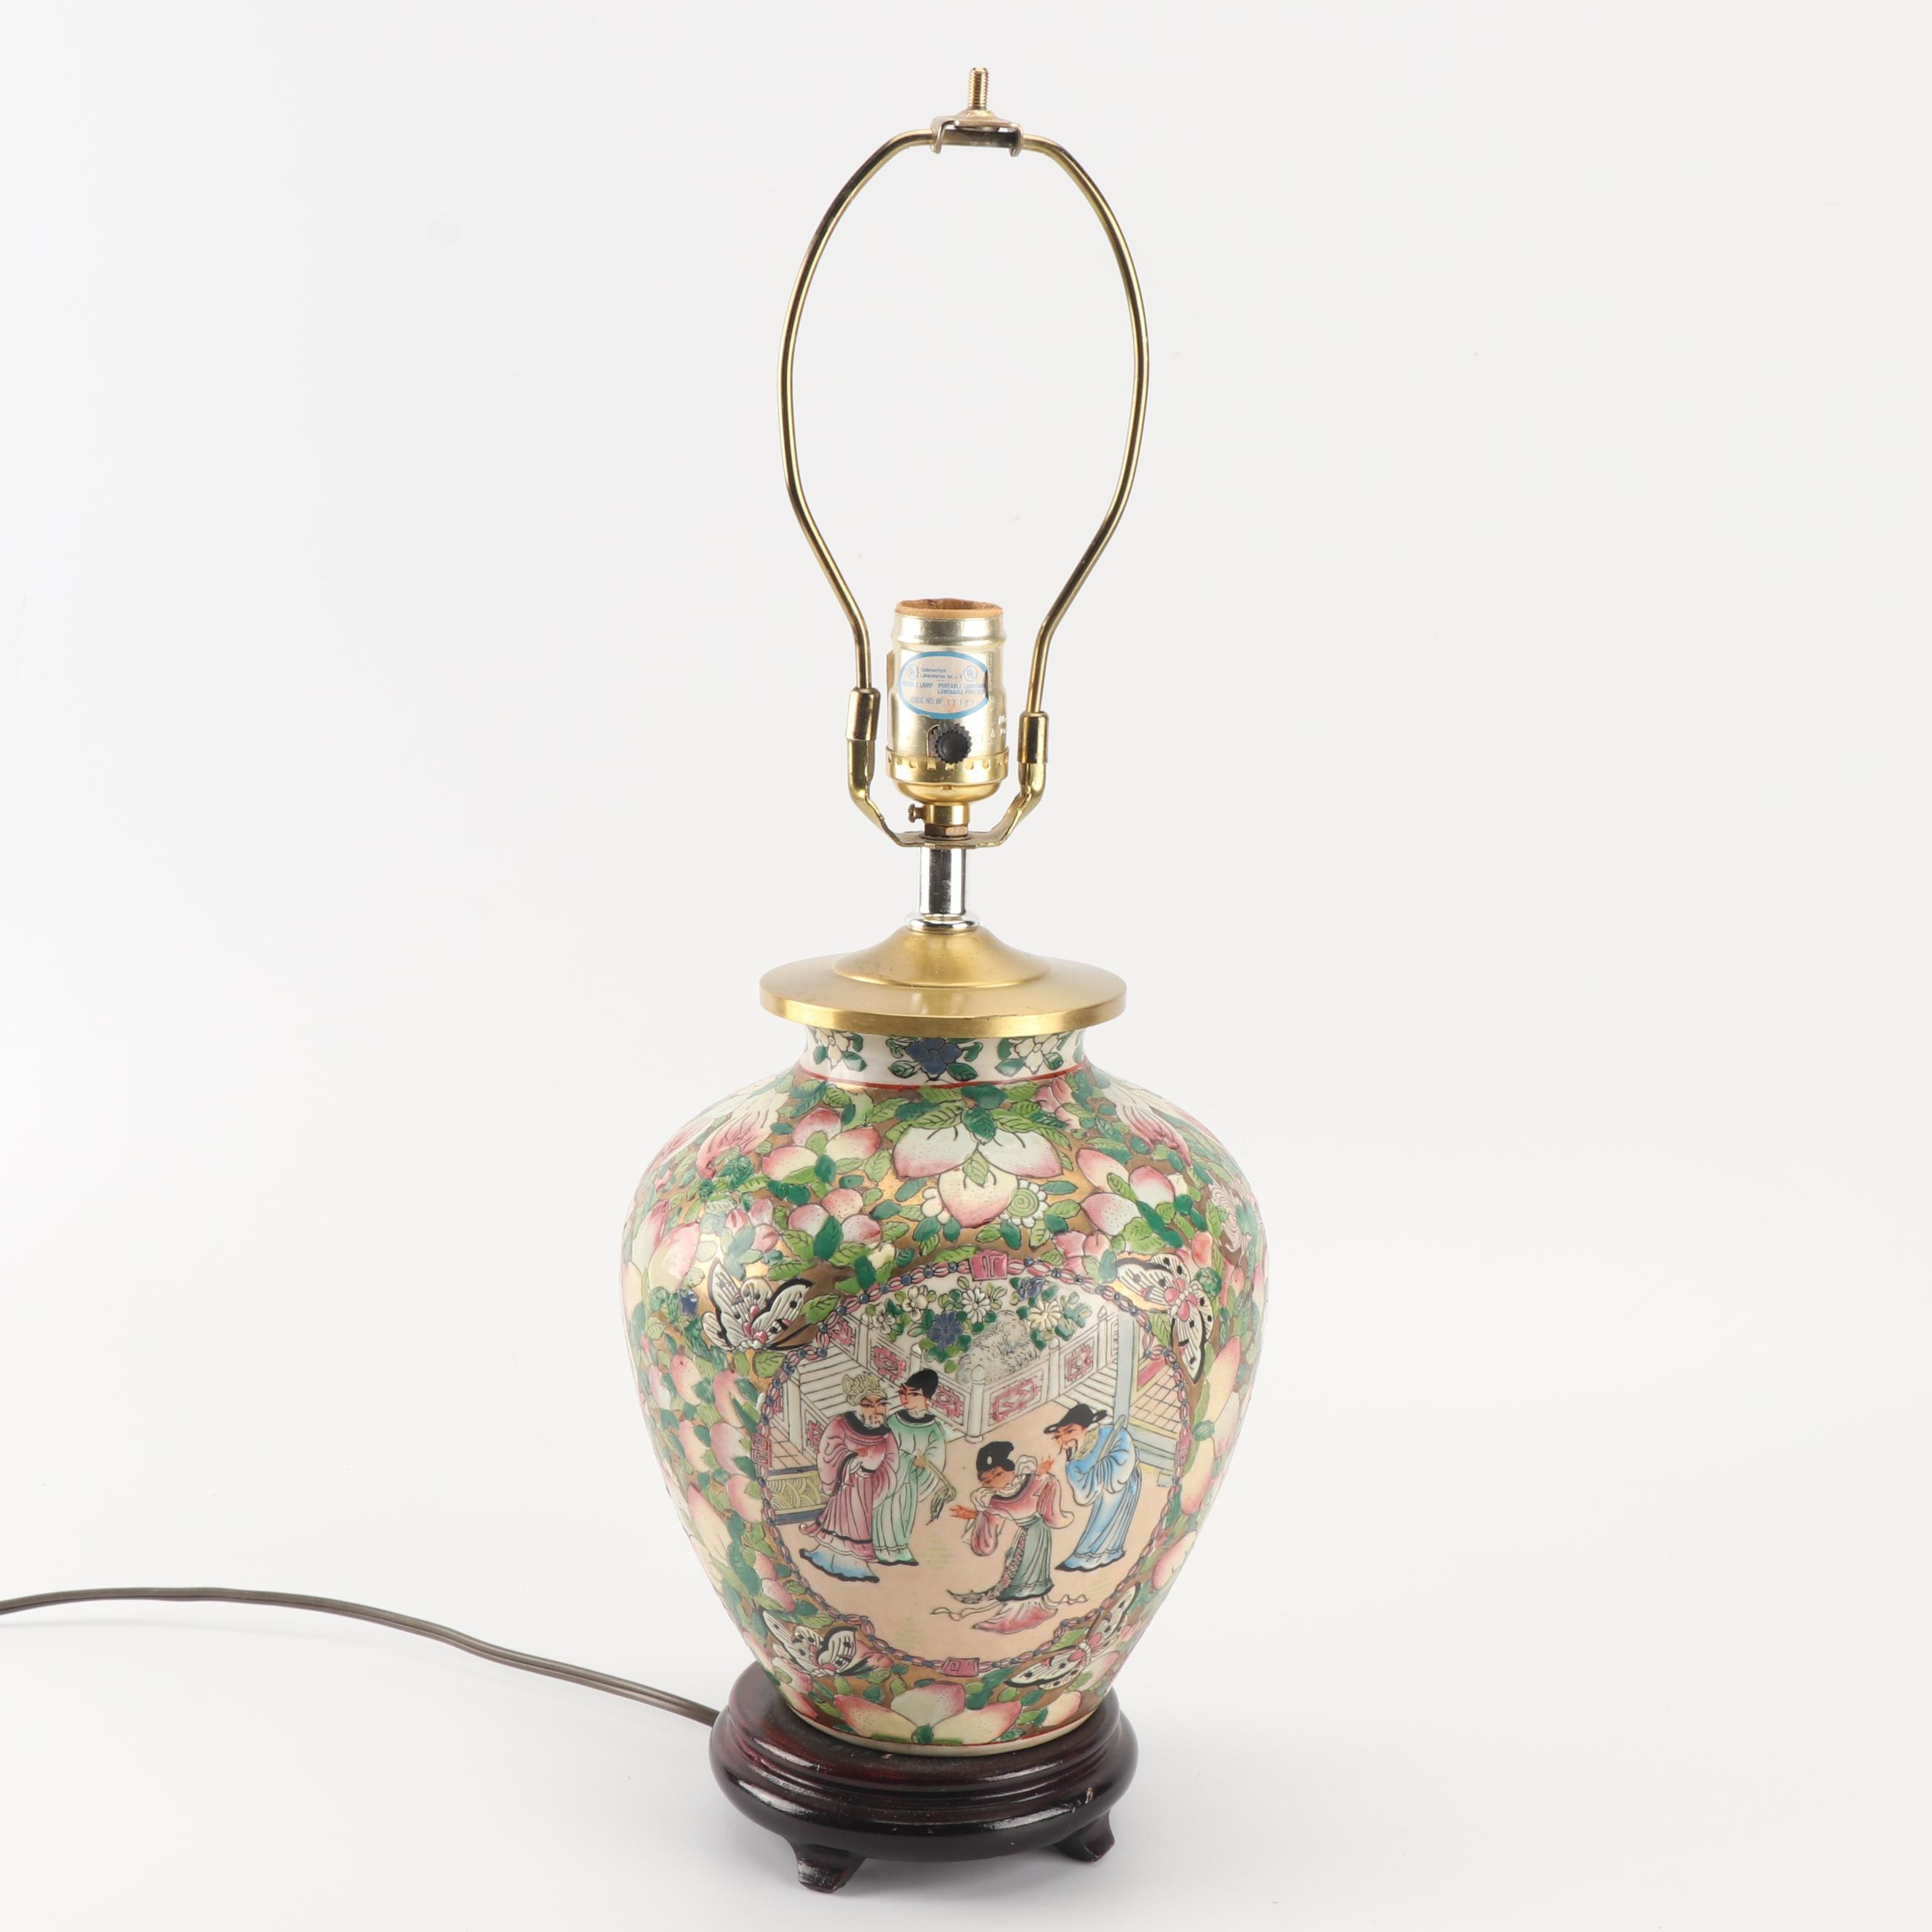 Hand-Painted Chinoiserie Porcelain Jar Table Lamp with Wooden Base